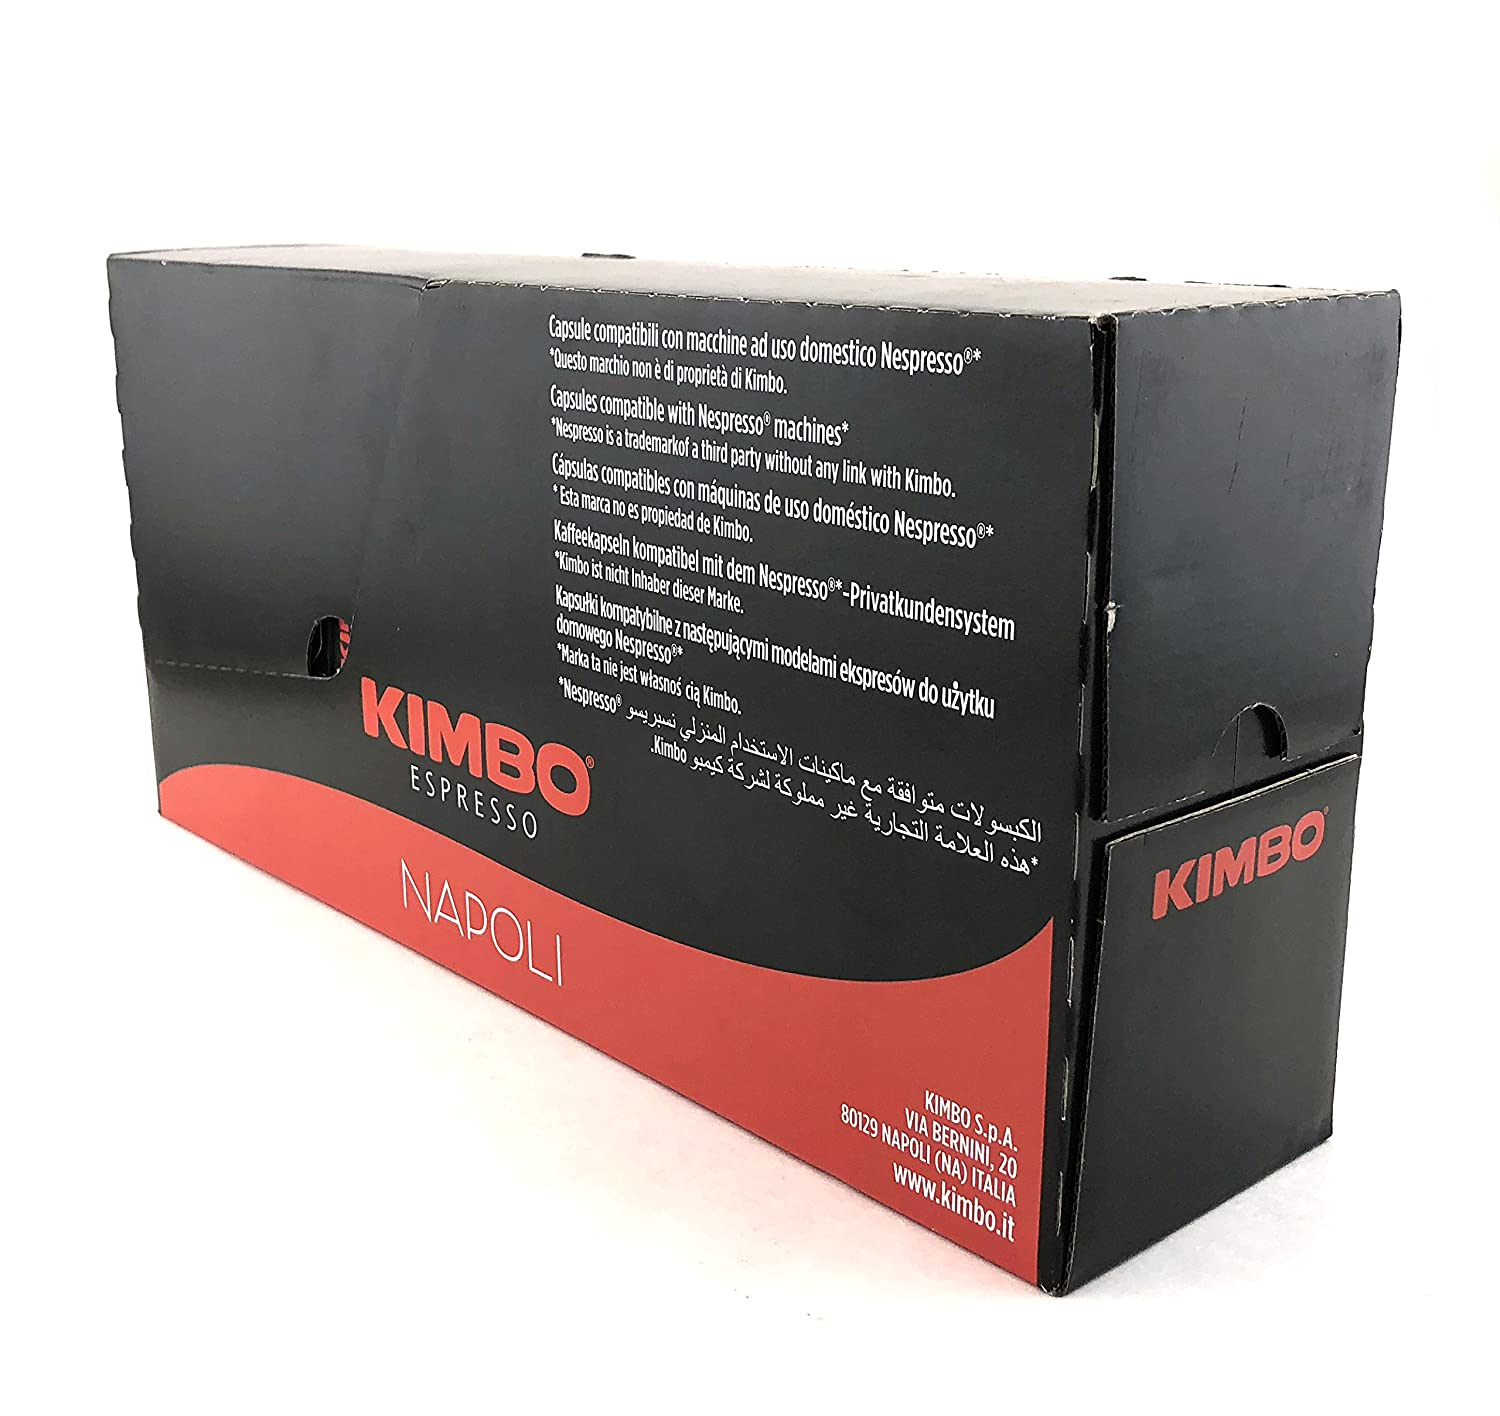 Kimbo Espresso Napoli Nespresso Capsules, 100% Arabica Coffee (Pack of 100 Capsules): Amazon.com: Grocery & Gourmet Food